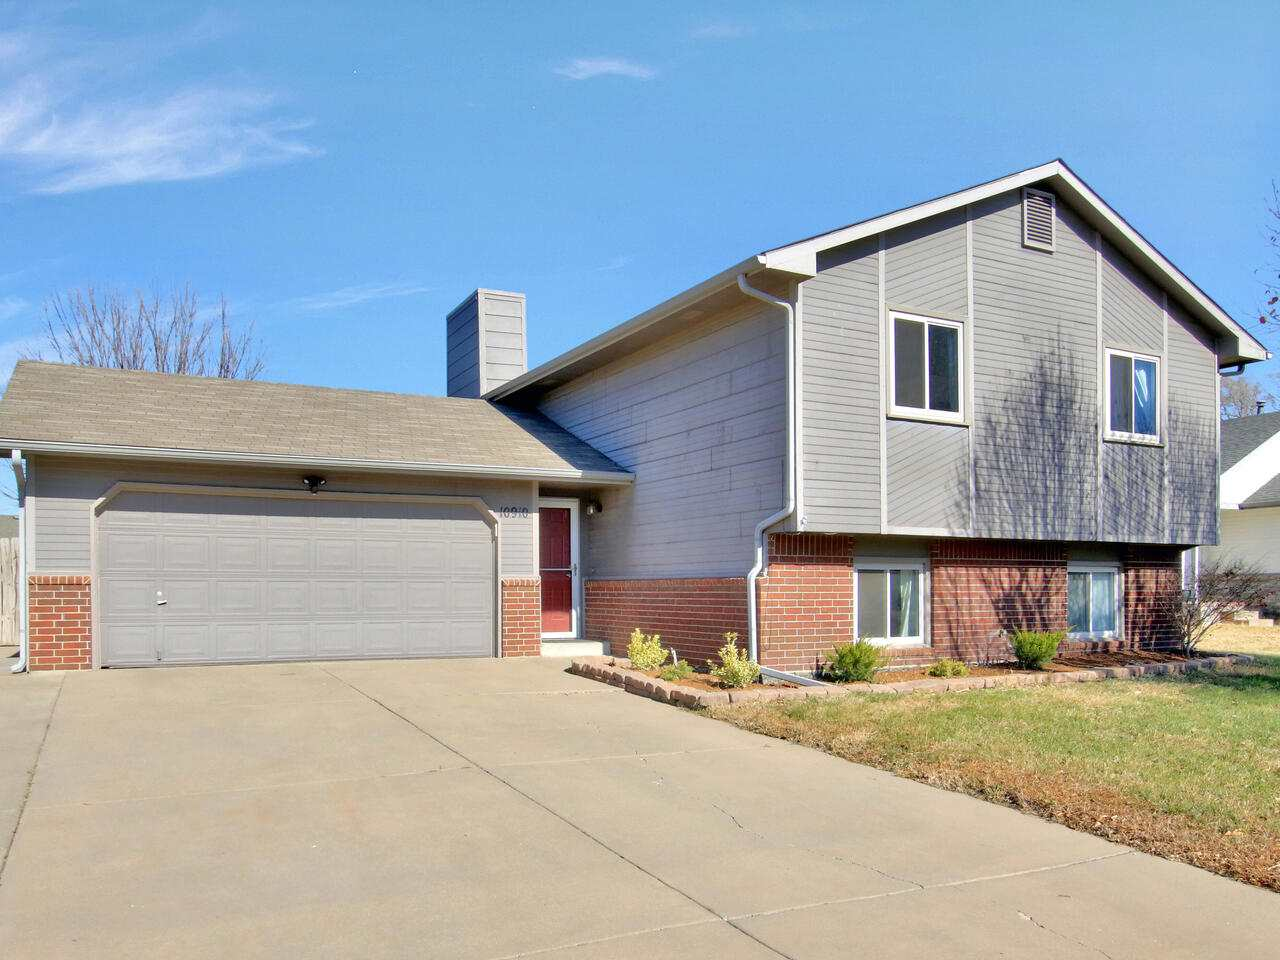 WELCOME HOME! This amazing home in Southwest Wichita is nestled in the lovely Park Glen community lo